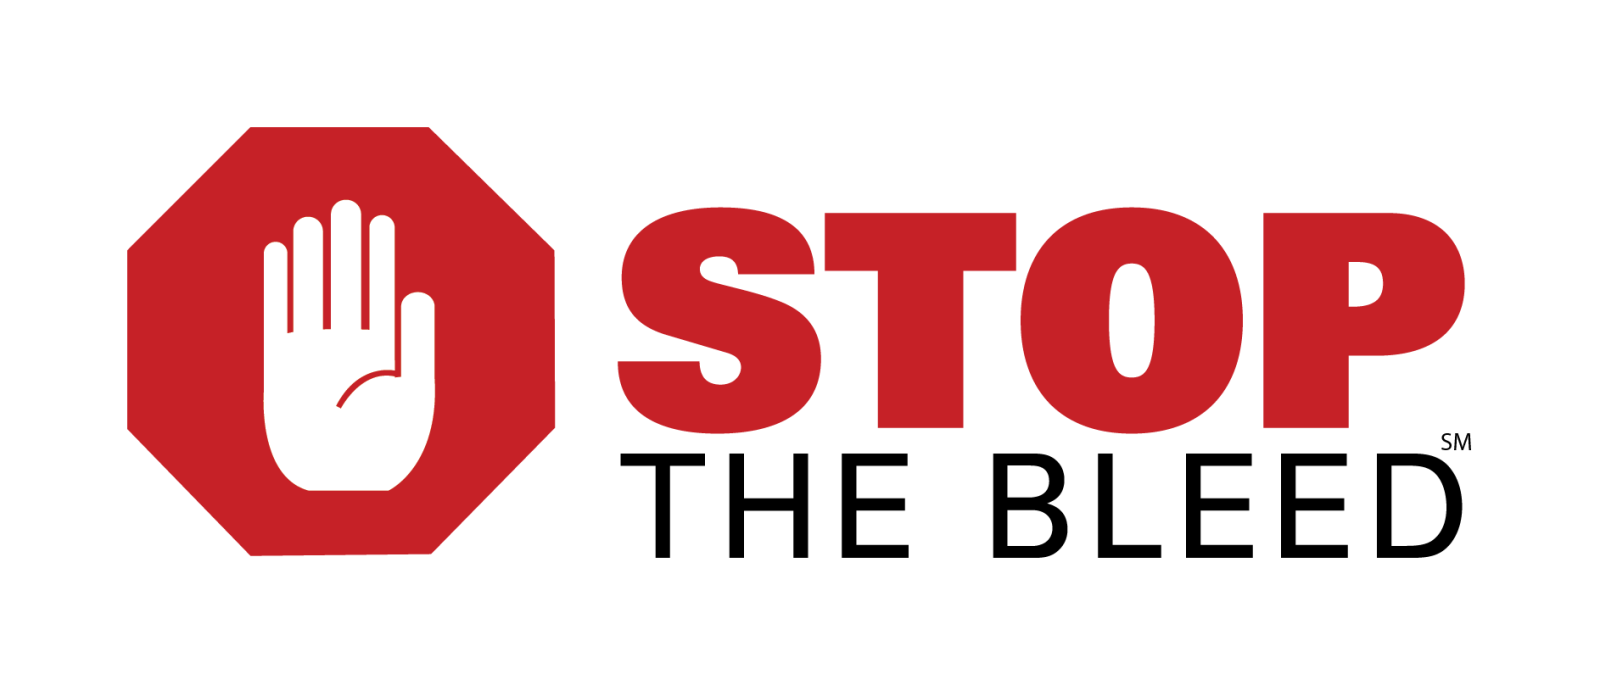 StoptheBleed, Stop the Bleed, STB logo